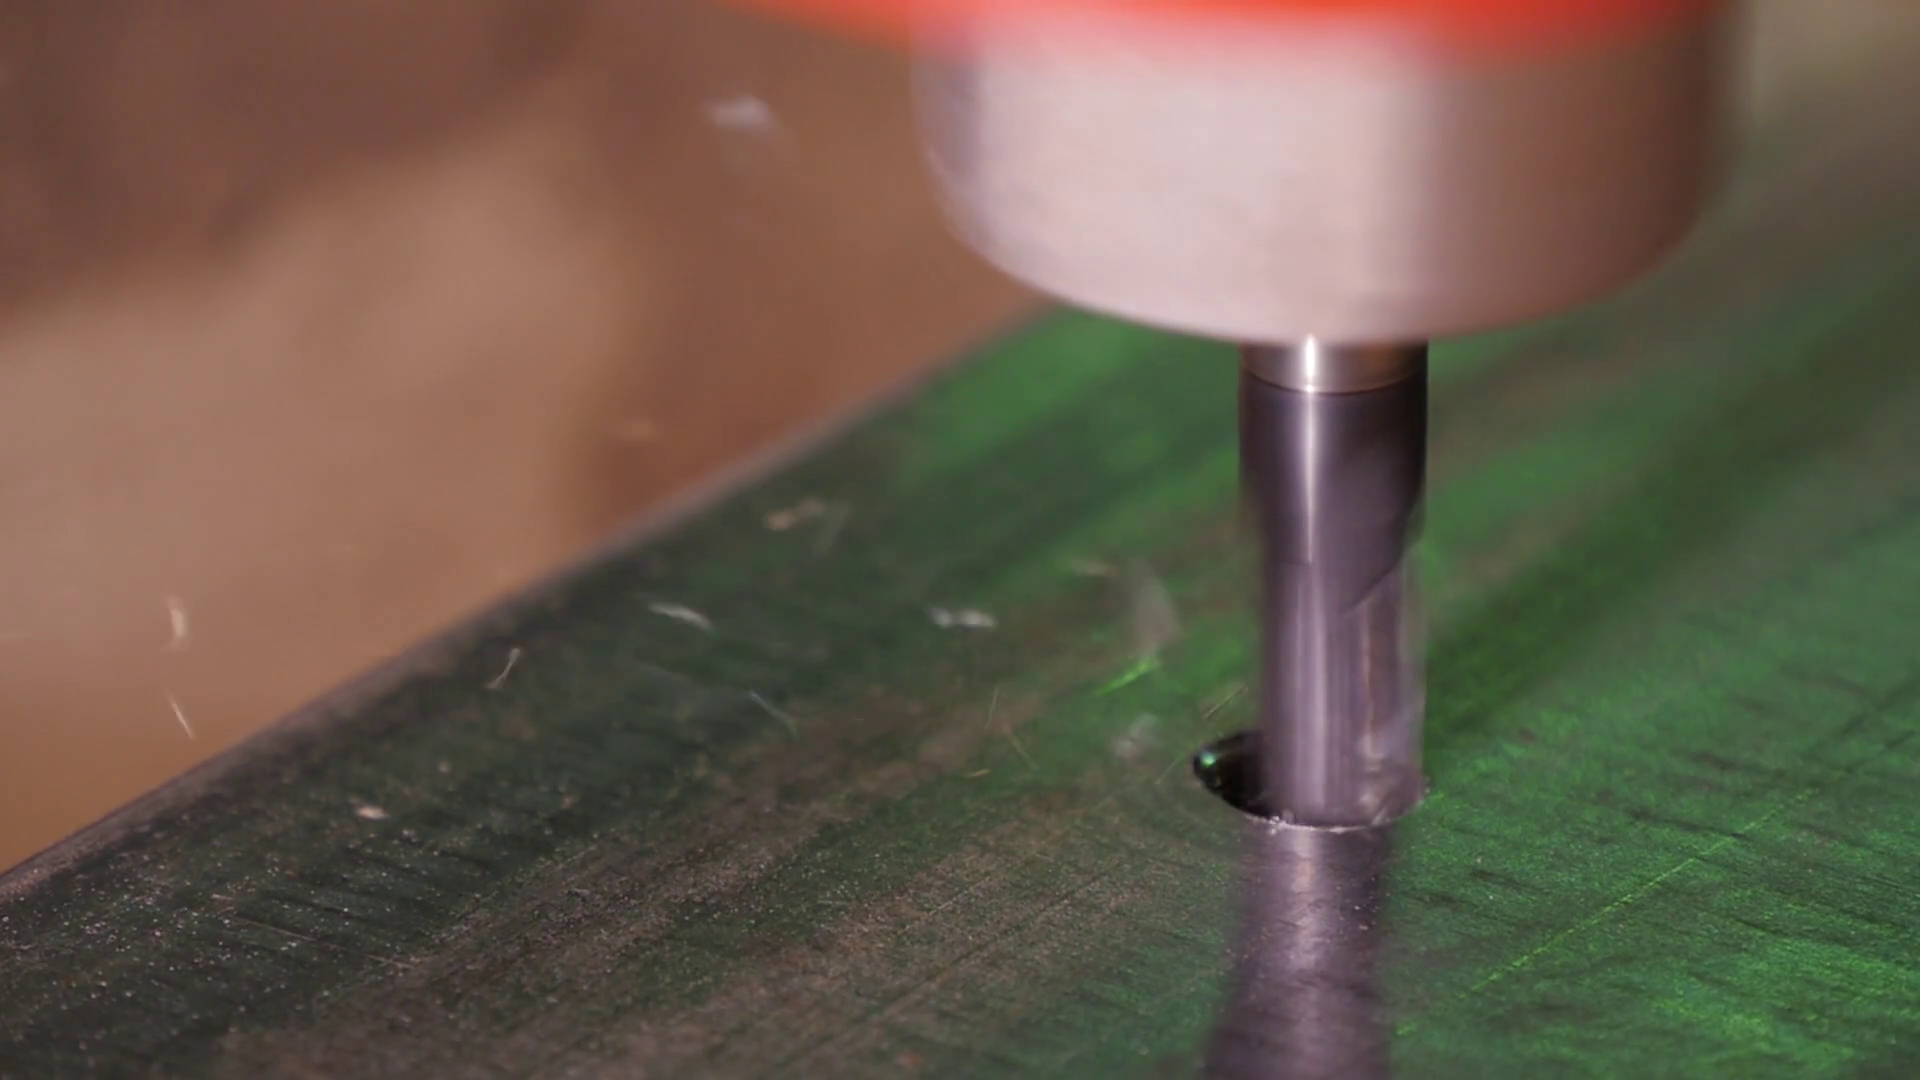 Hole being drilled into metal. Metal drilling closeup in metal ...